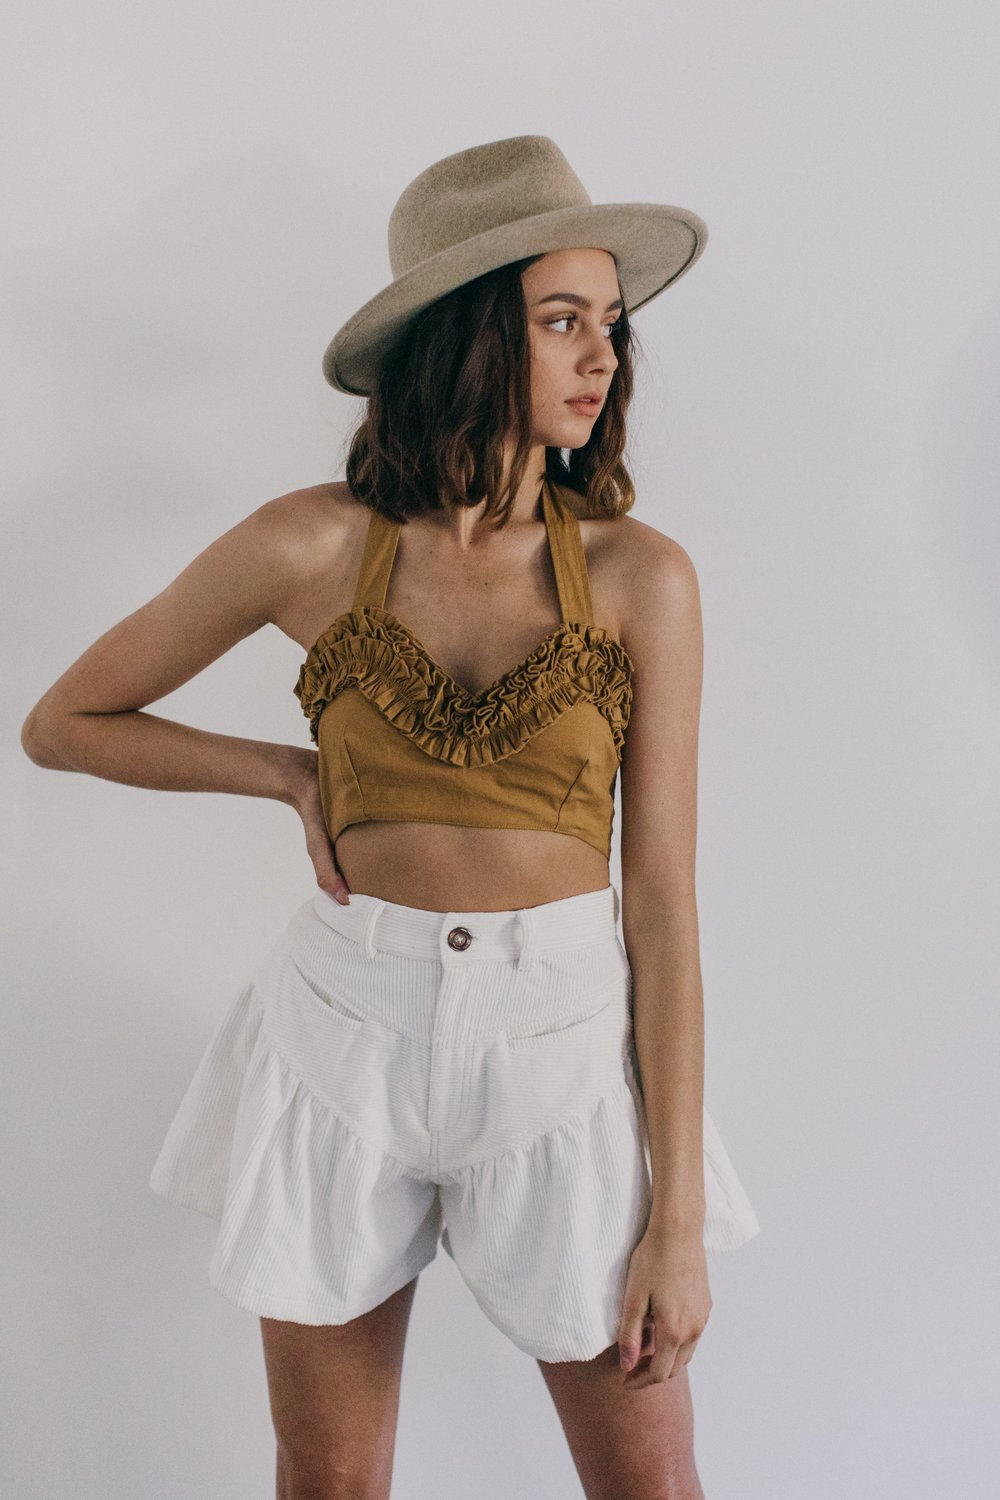 The Paloma Cord Shorts in Cream